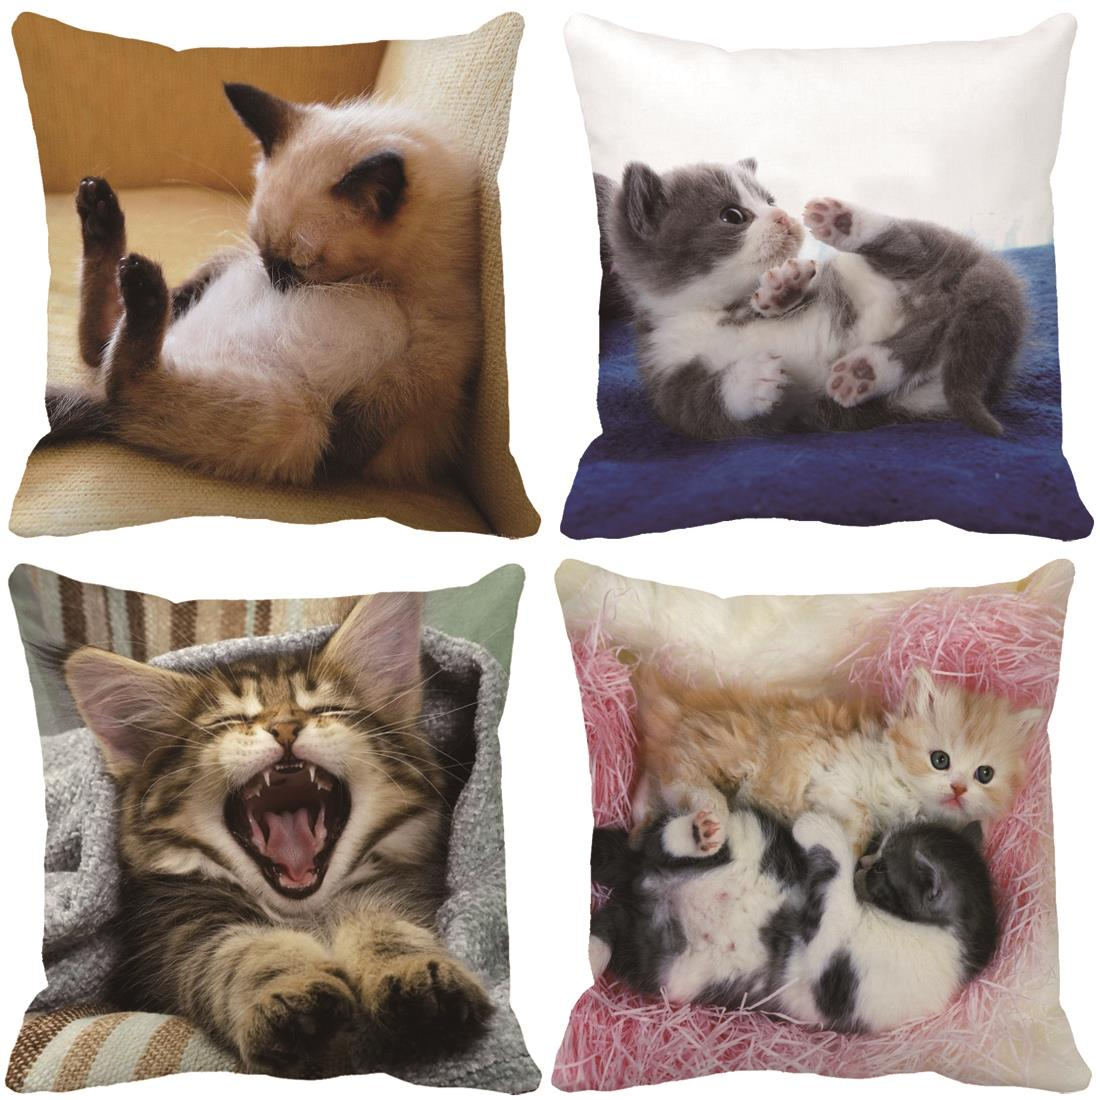 Lovely Kitty Cats Print Custom Decorative Pillows For Couch Bed Car  Cushions Home Decor Throw Pillow